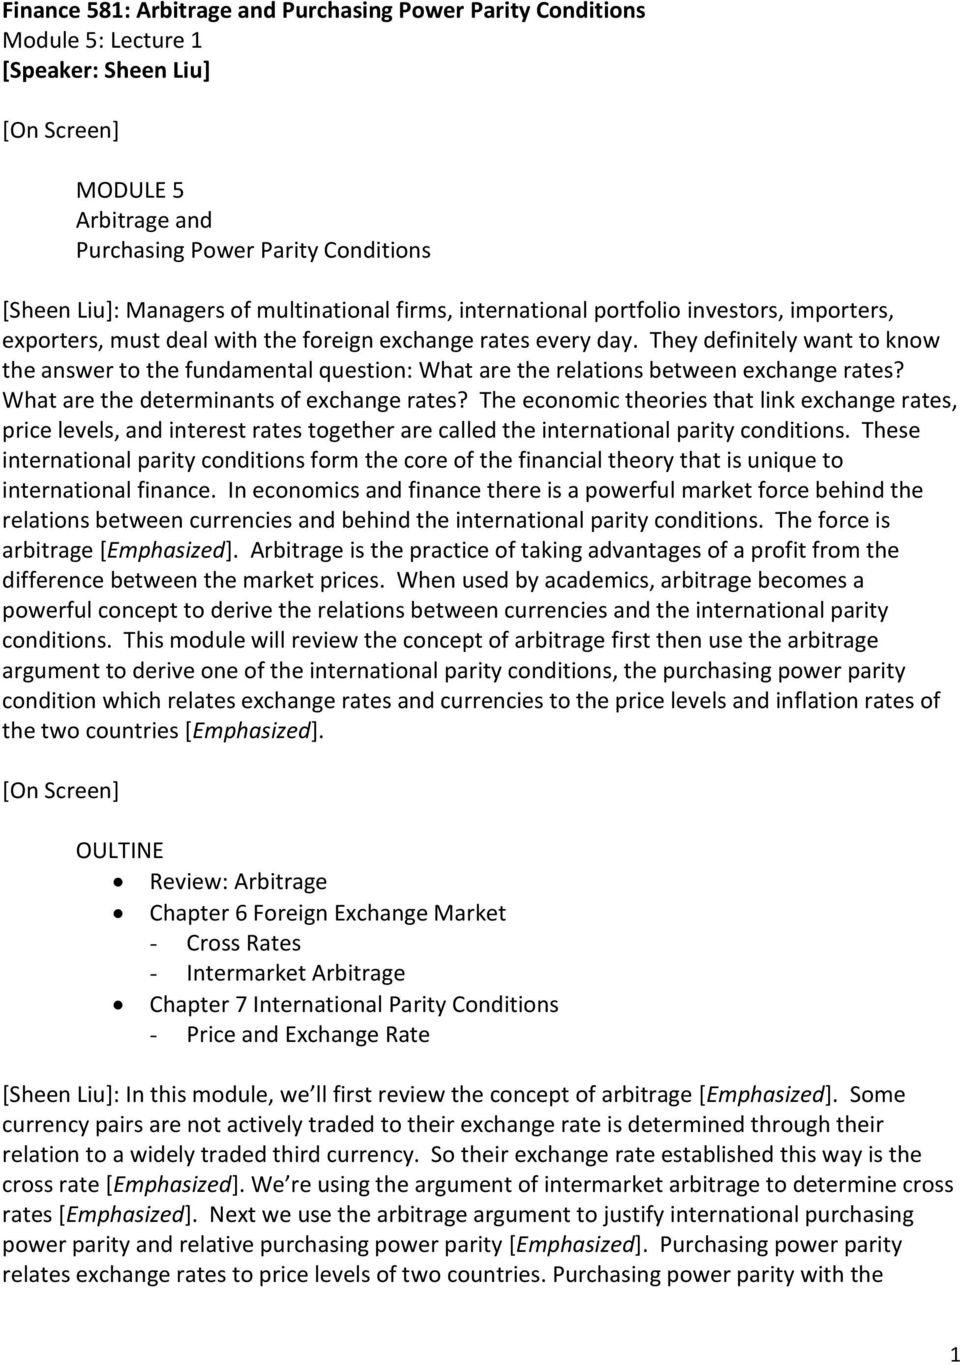 They definitely want to know the answer to the fundamental question: What are the relations between exchange rates? What are the determinants of exchange rates?